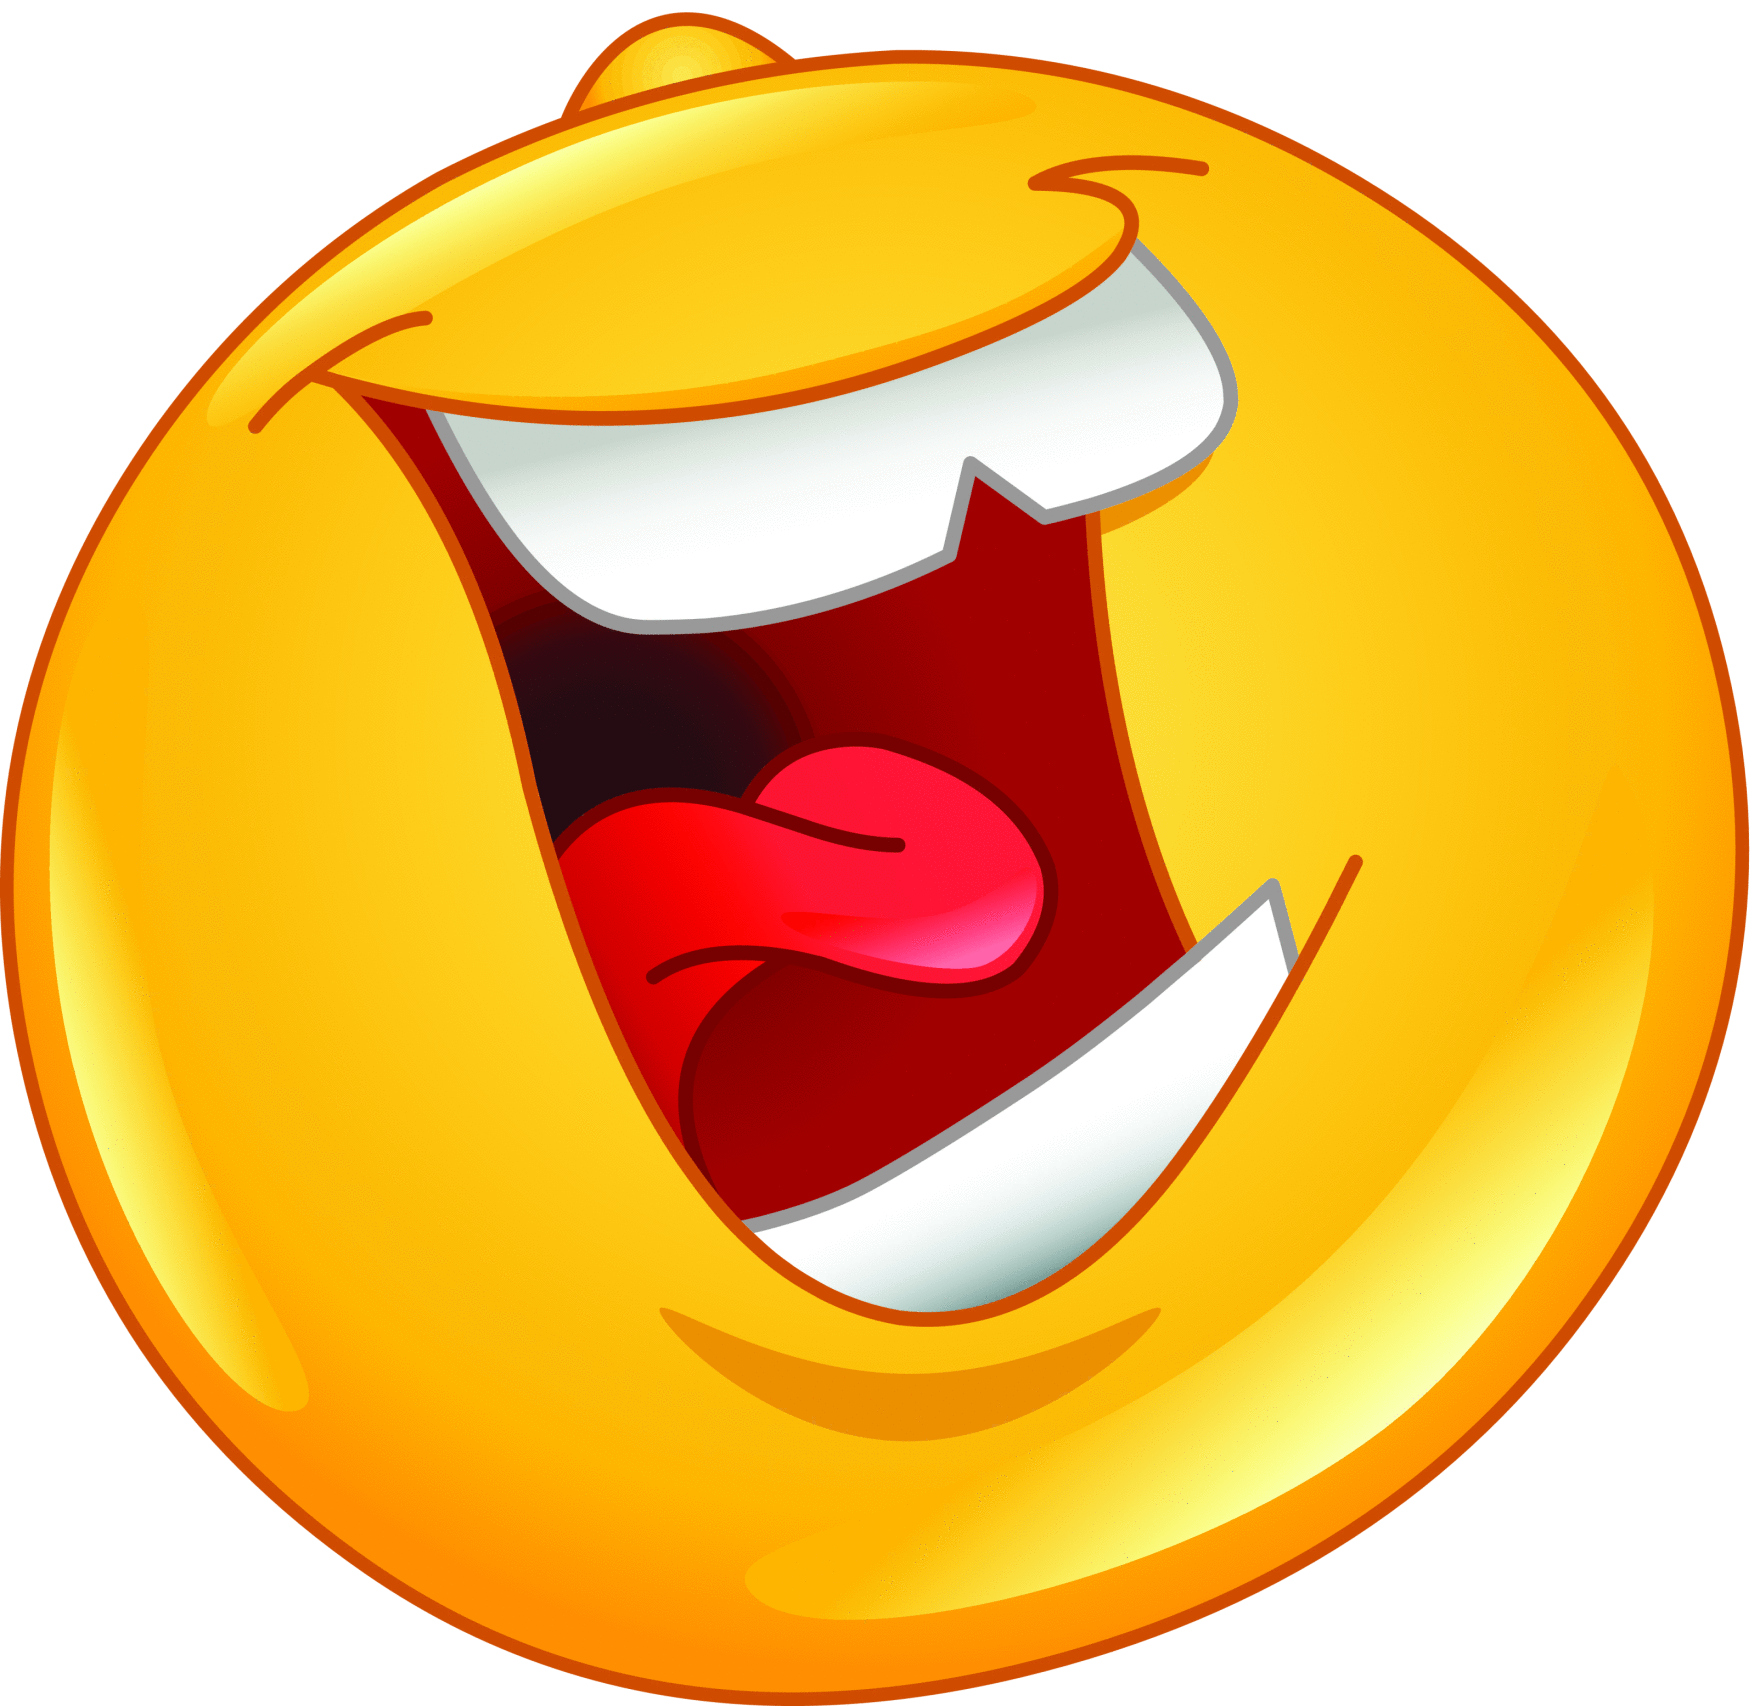 Laughing Hysterically Clipart - Clipart Suggest